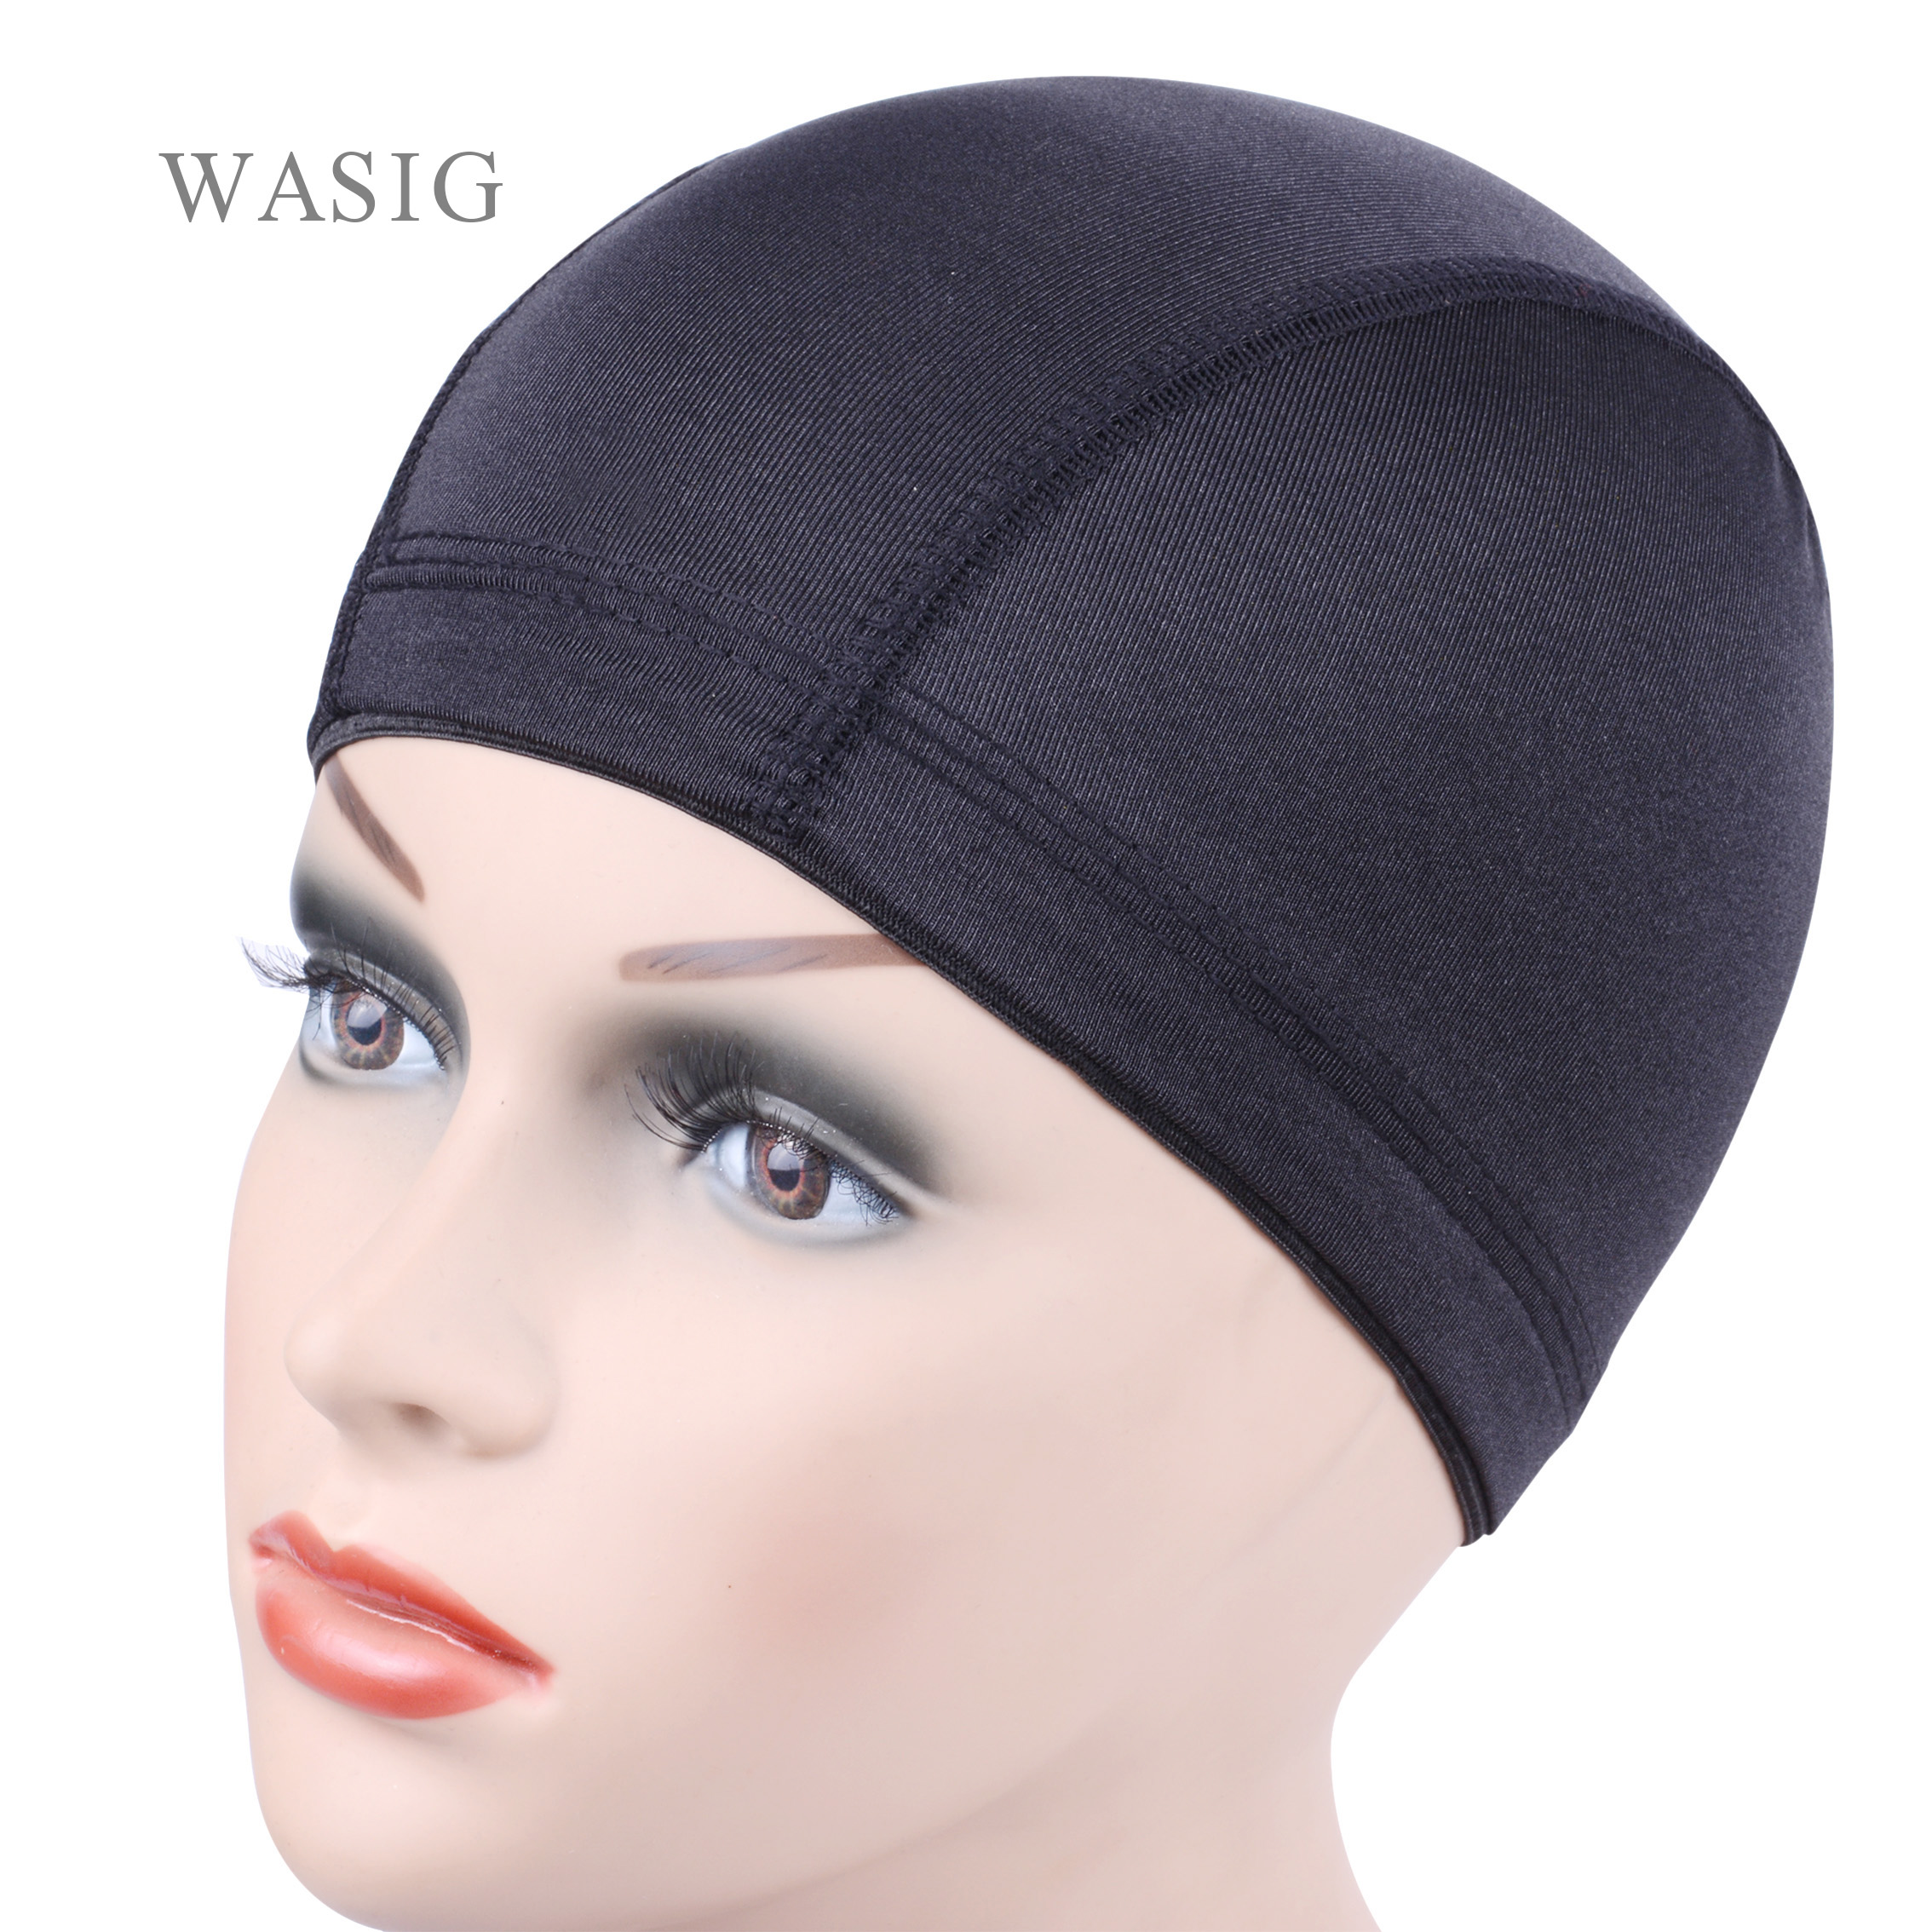 3pcs Glueless Hair Net Wig Liner Cheap Wig Caps For Making Wigs Spandex Net Elastic Dome Wig Cap